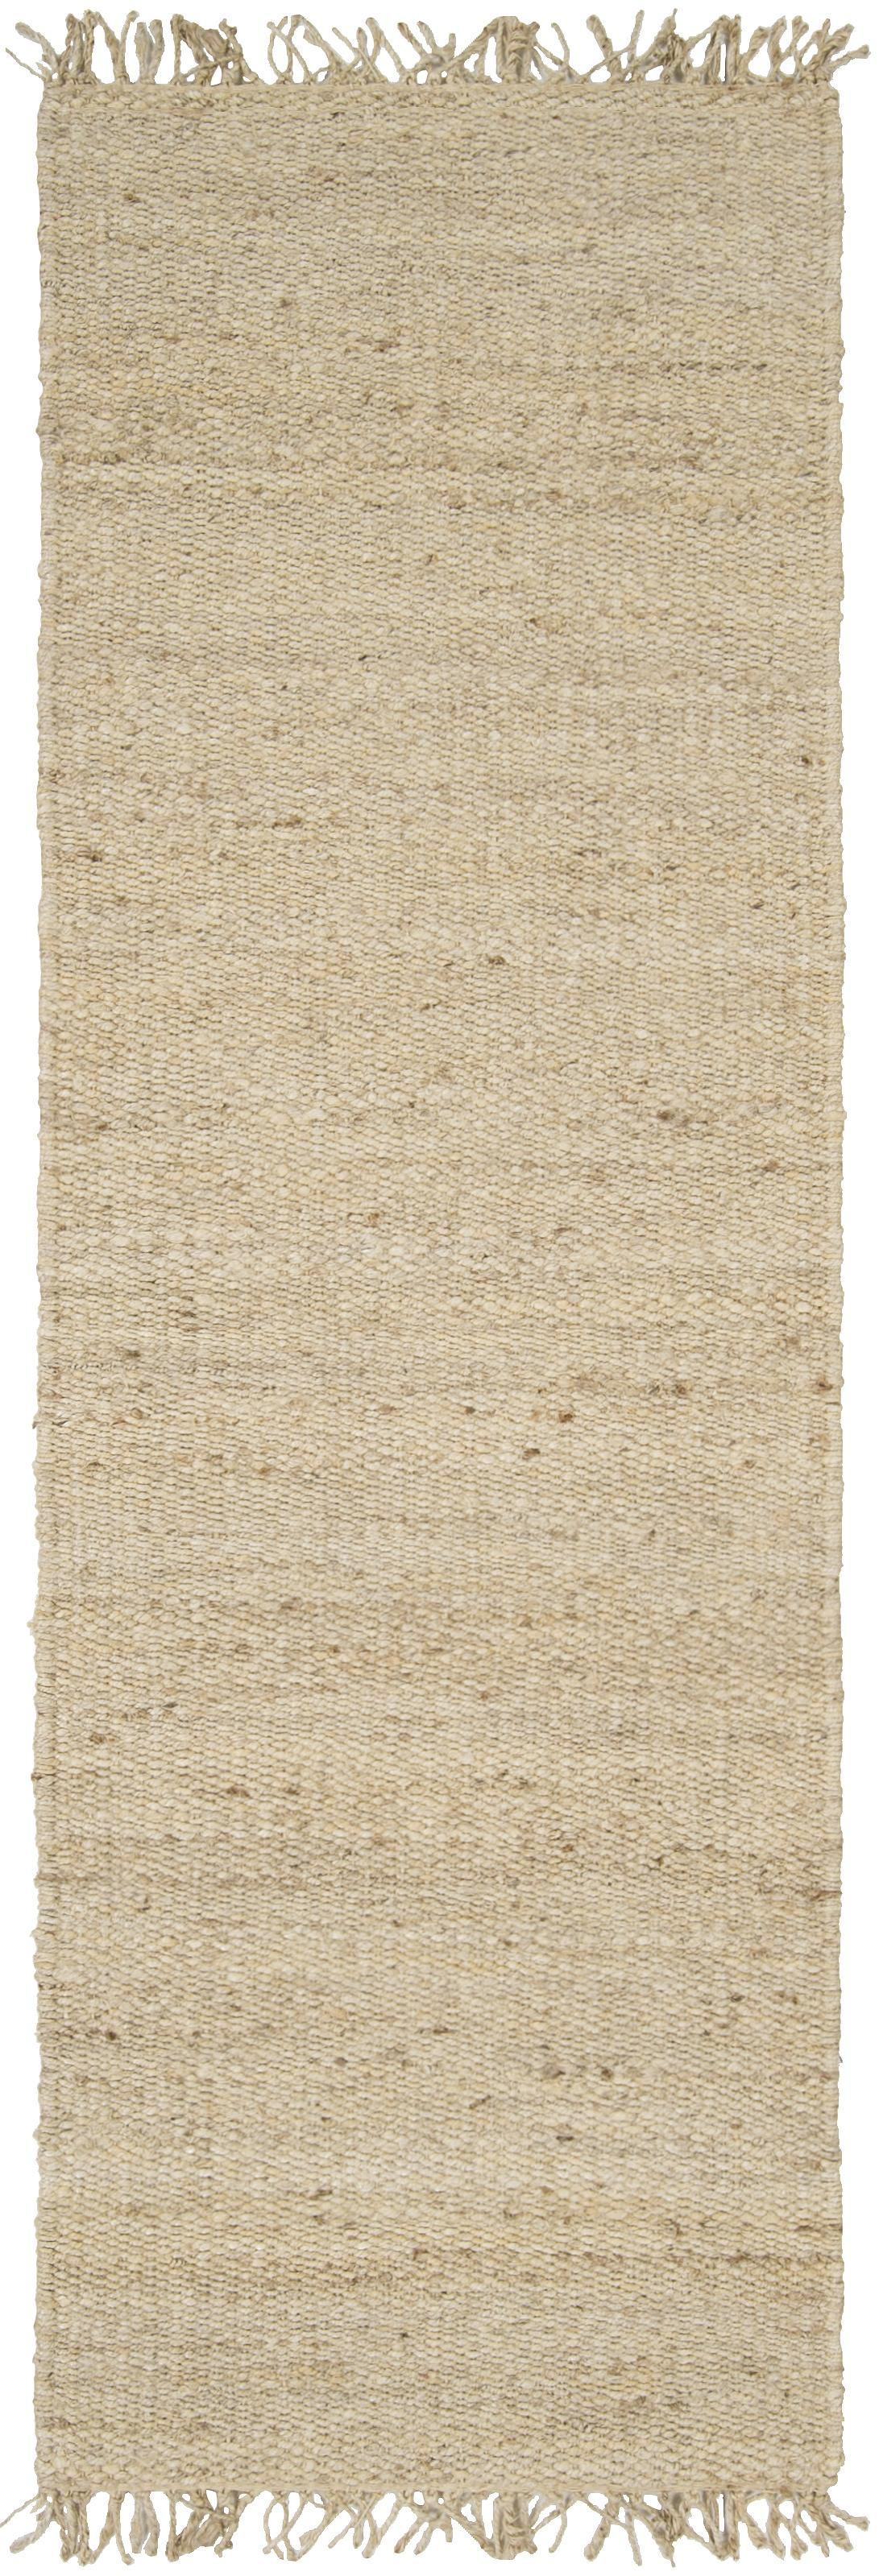 """Jute Bleached 2'6"""" x 7'6"""" by Ruby-Gordon Accents at Ruby Gordon Home"""